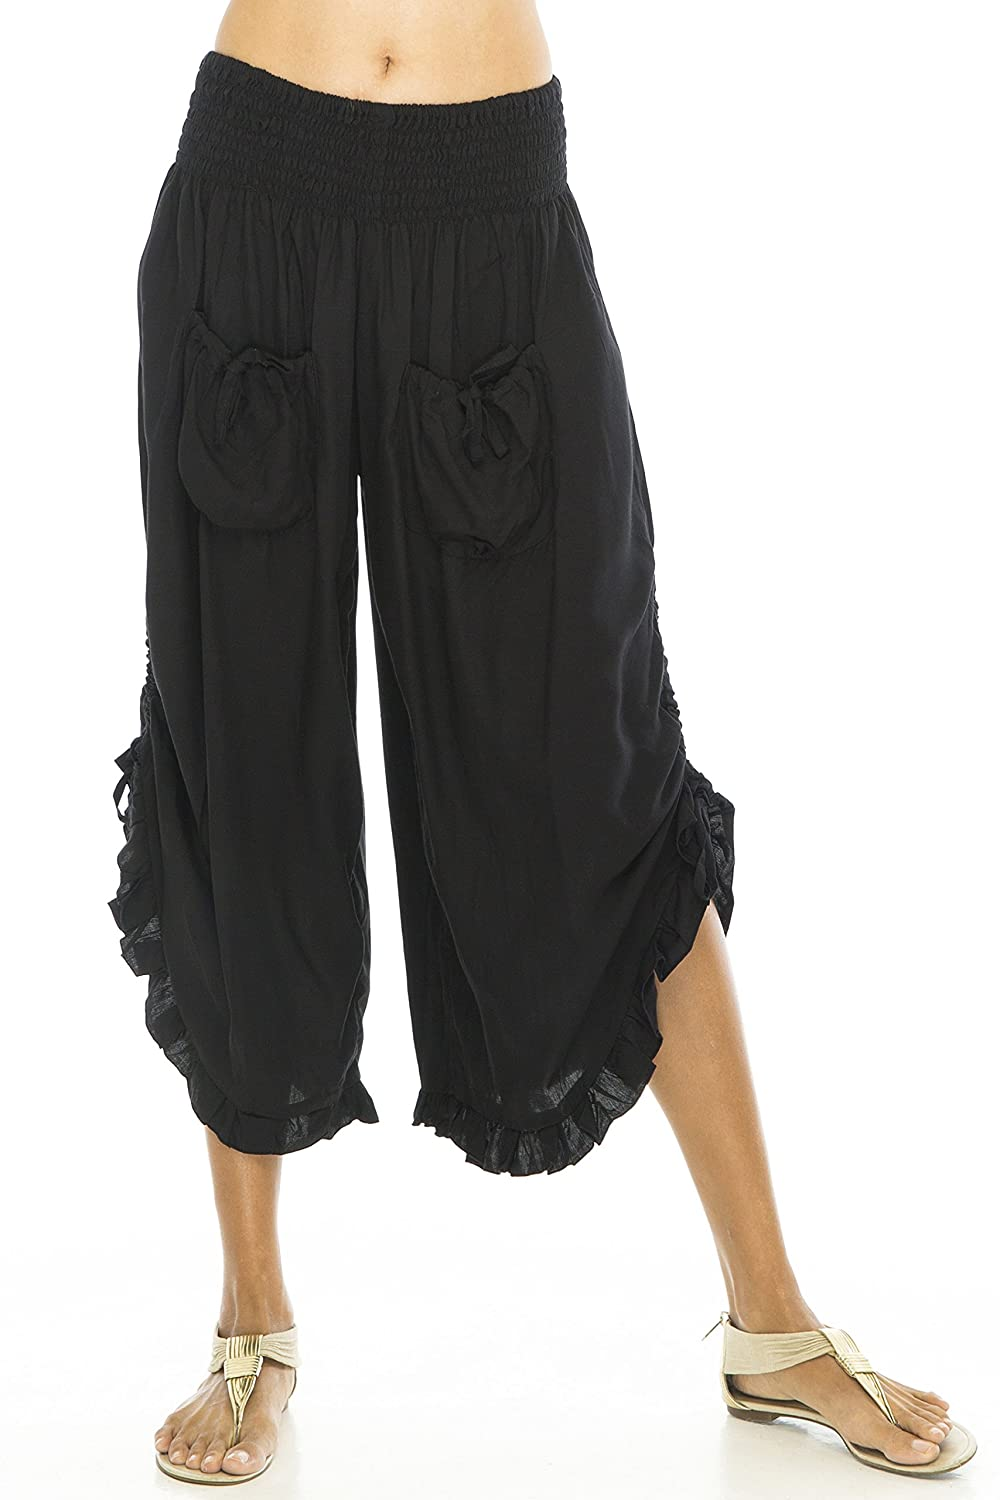 Women's Cropped Ruffled Wide Leg Black Lady Pirate Pants - DeluxeAdultCostumes.com